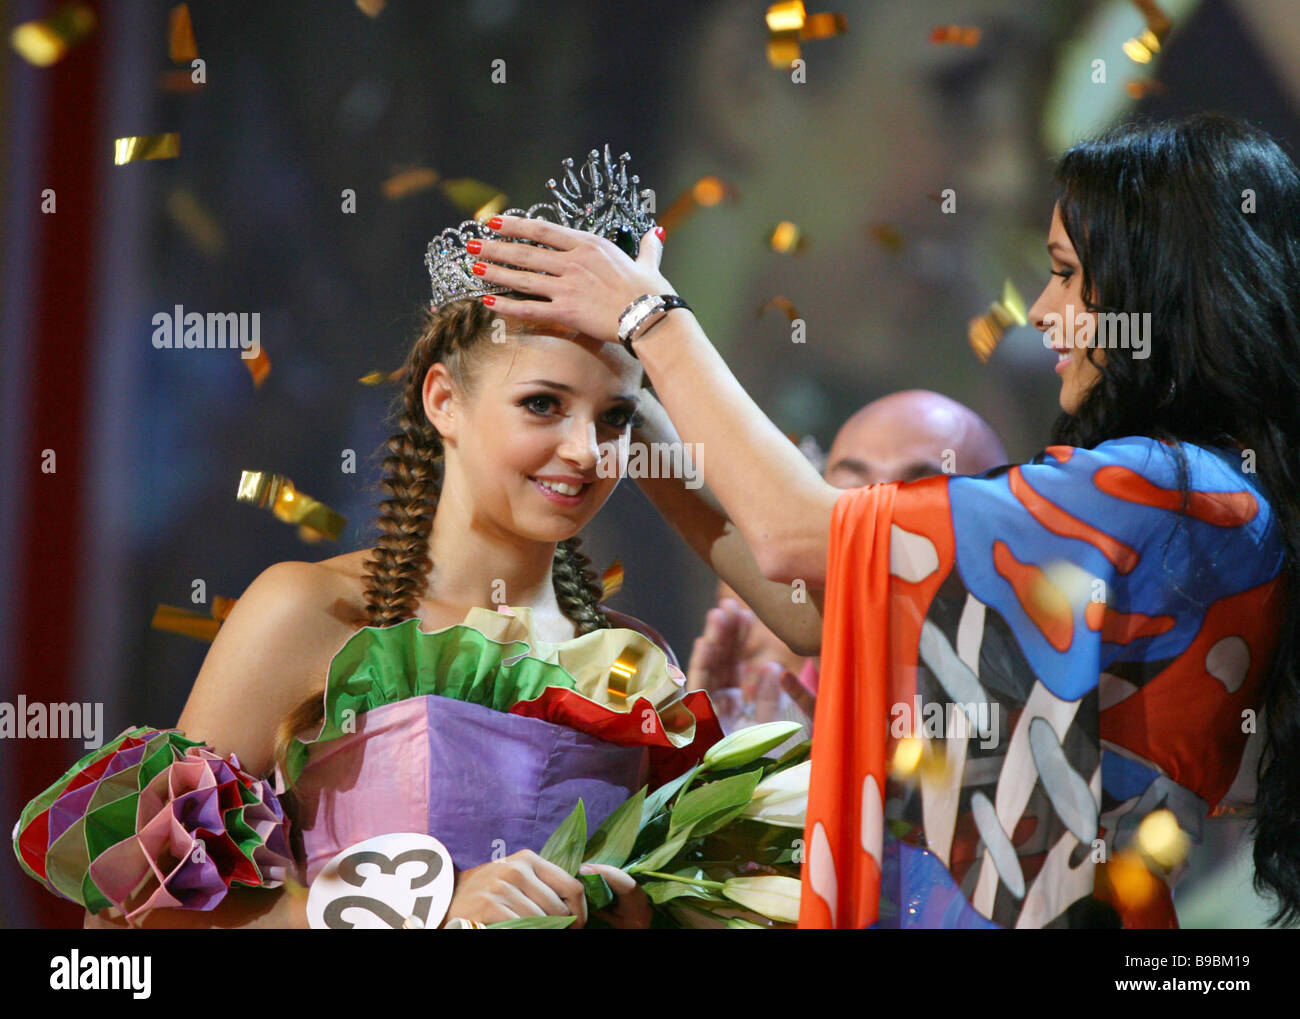 Muscovite Alexandra Mazur 19 wins the Russian Beauty 2006 contest - Stock Image